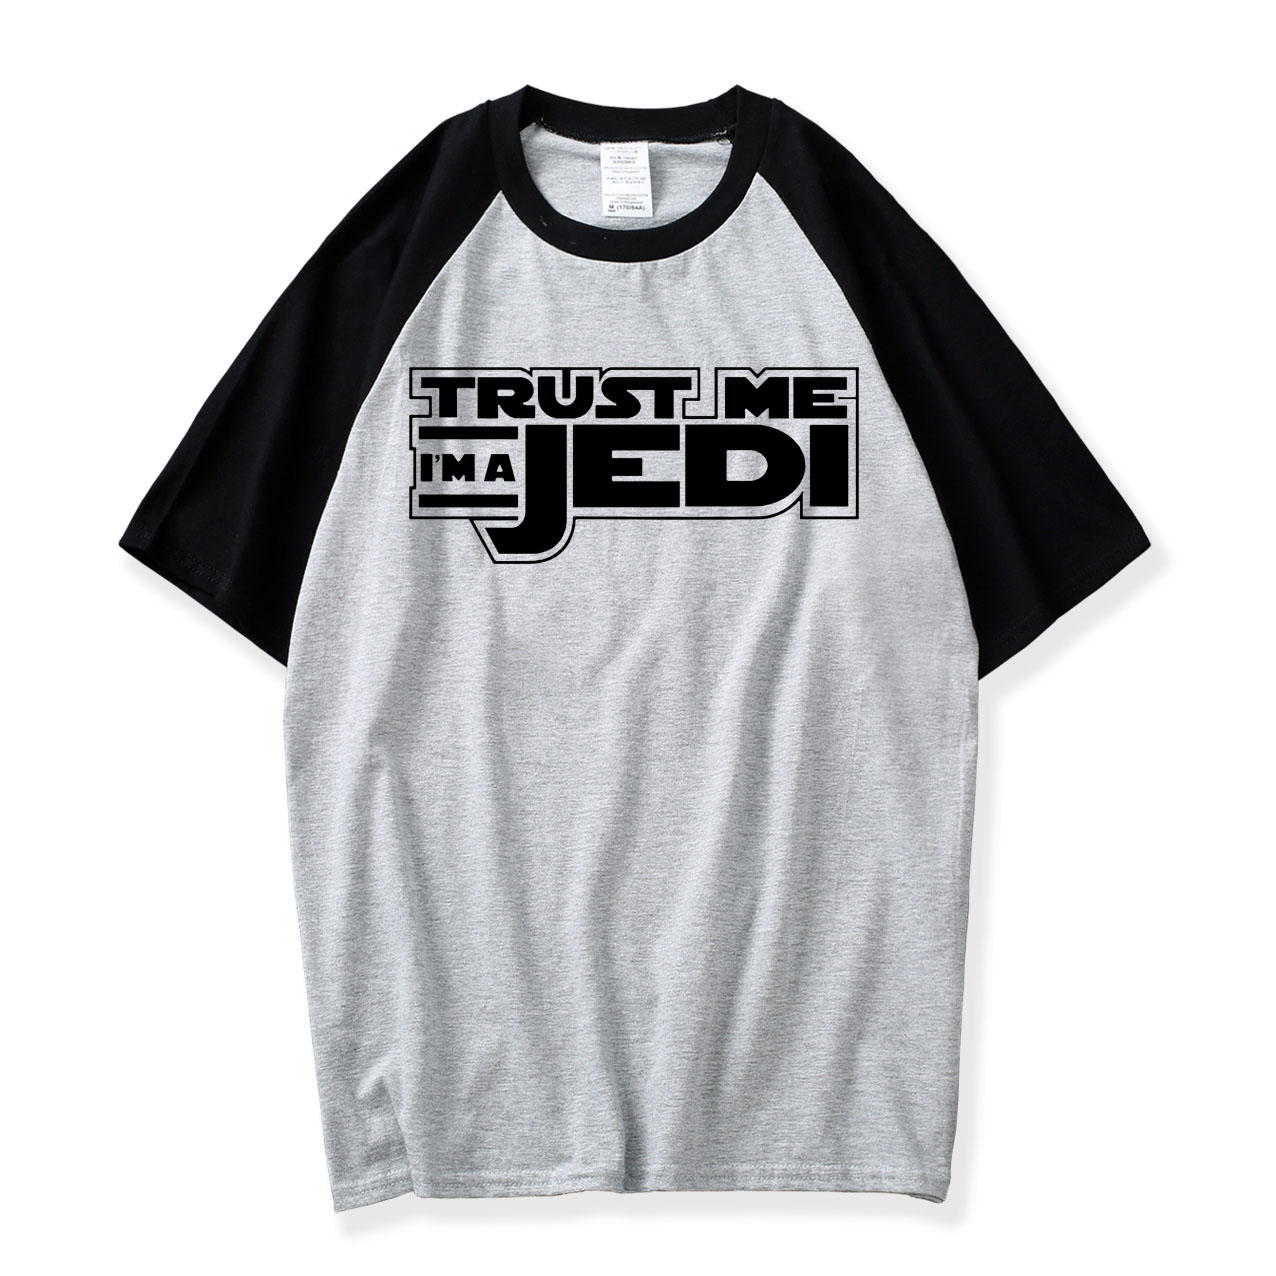 2018 Summer Hot Sale Printing College Tshirt Men Funny STAR WARS Trust Me I'm a Jedi knight Tshirts O-neck Shirts For Movie Fans